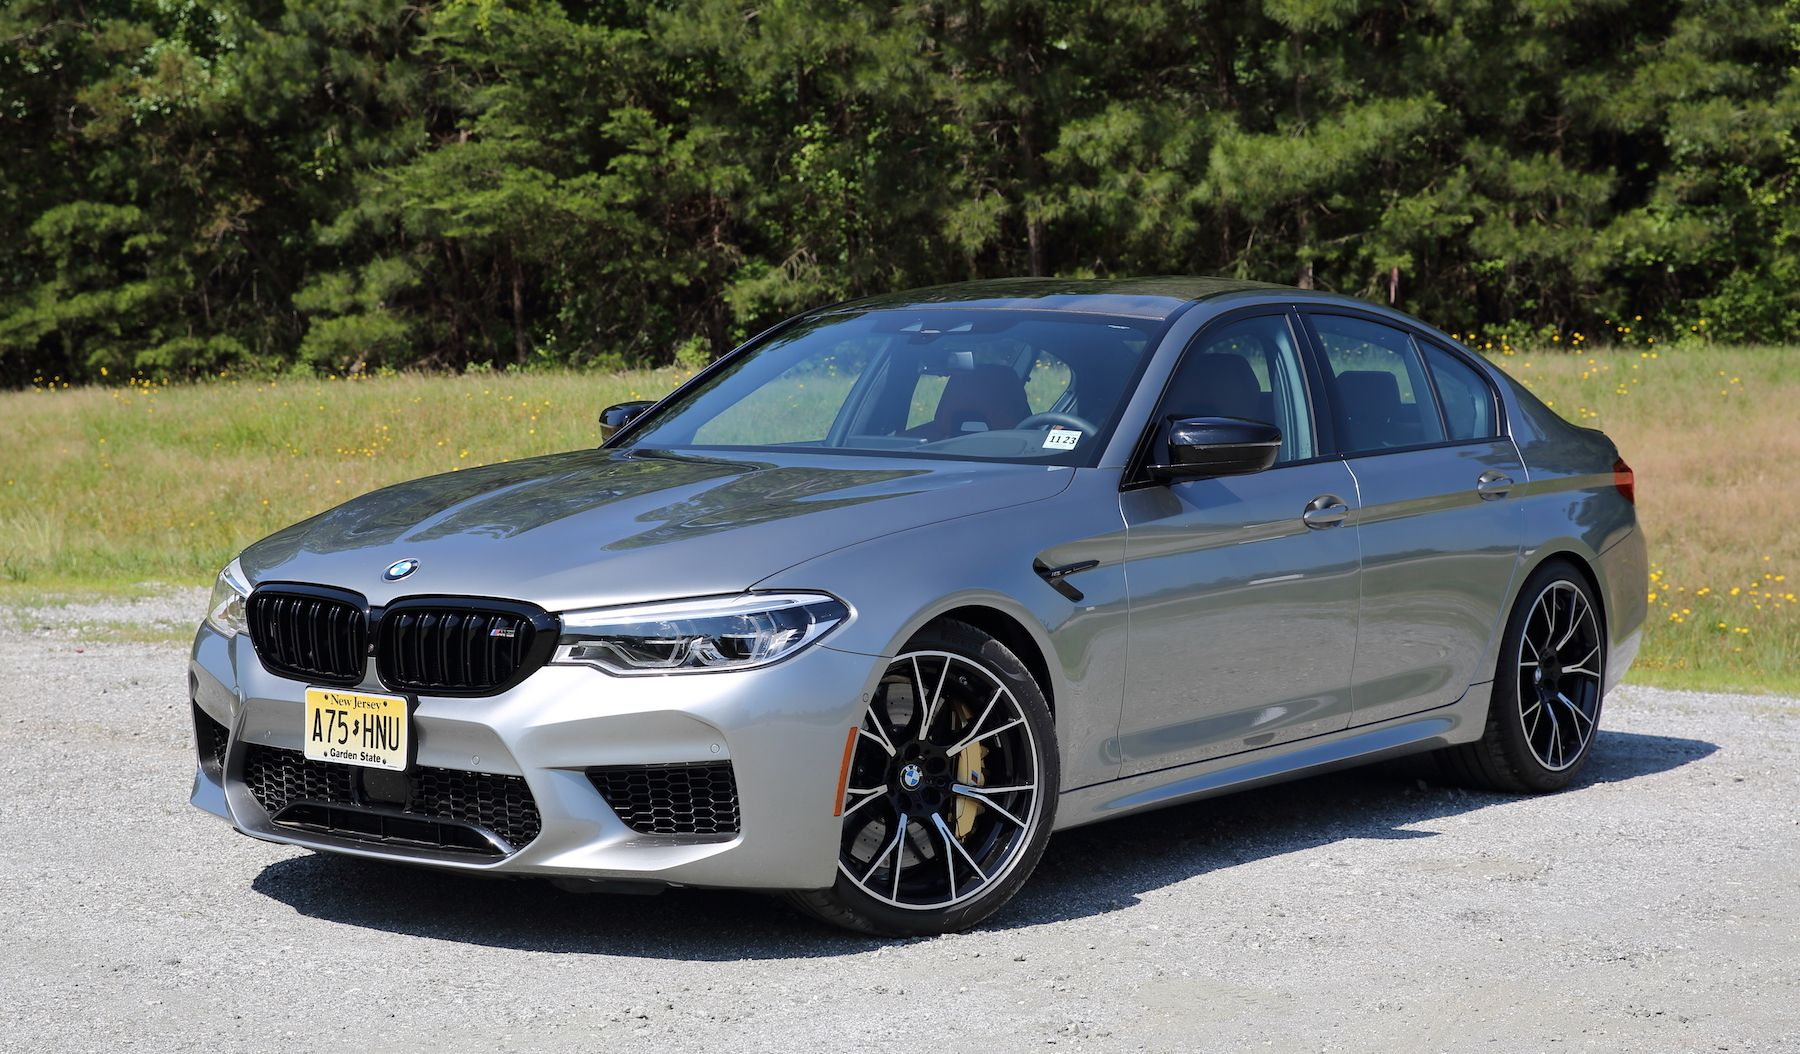 64 Best Review 2019 Bmw M5 Style for 2019 Bmw M5